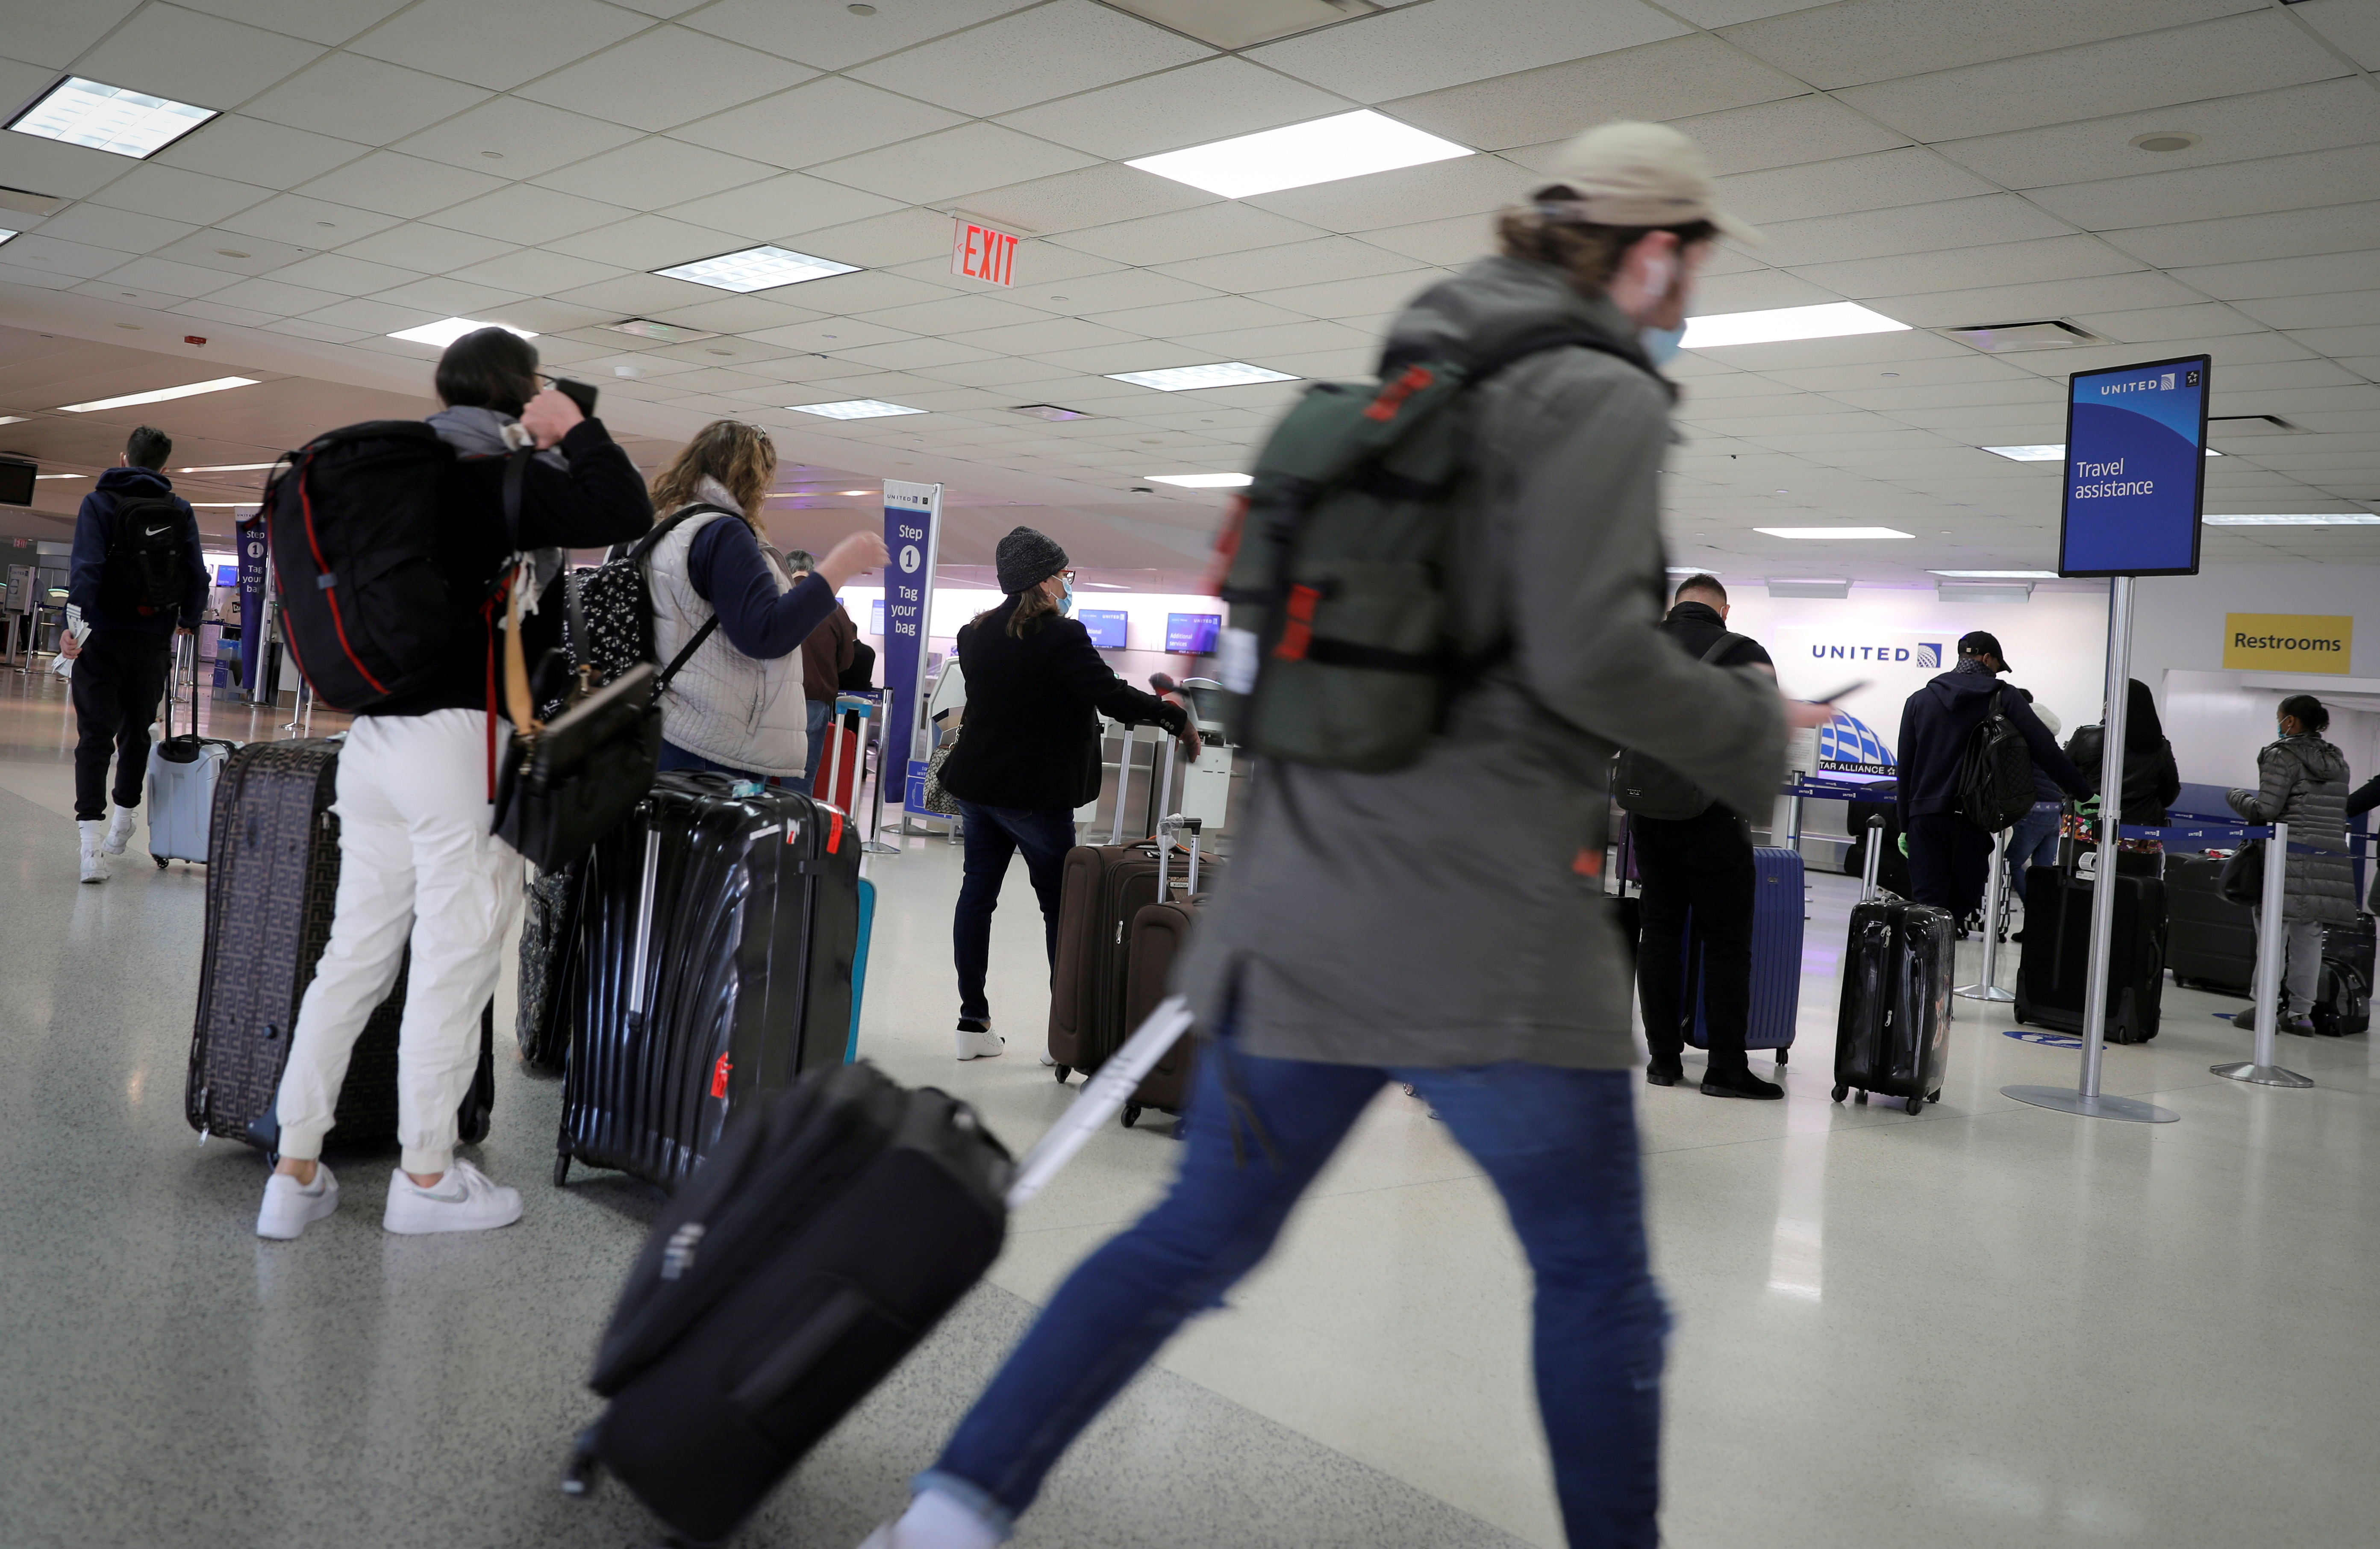 Travelers pack a United Airlines check-in area ahead of the Thanksgiving holiday at Newark International Airport in Newark, New Jersey, U.S., November 25, 2020. REUTERS/Mike Segar/File Photo